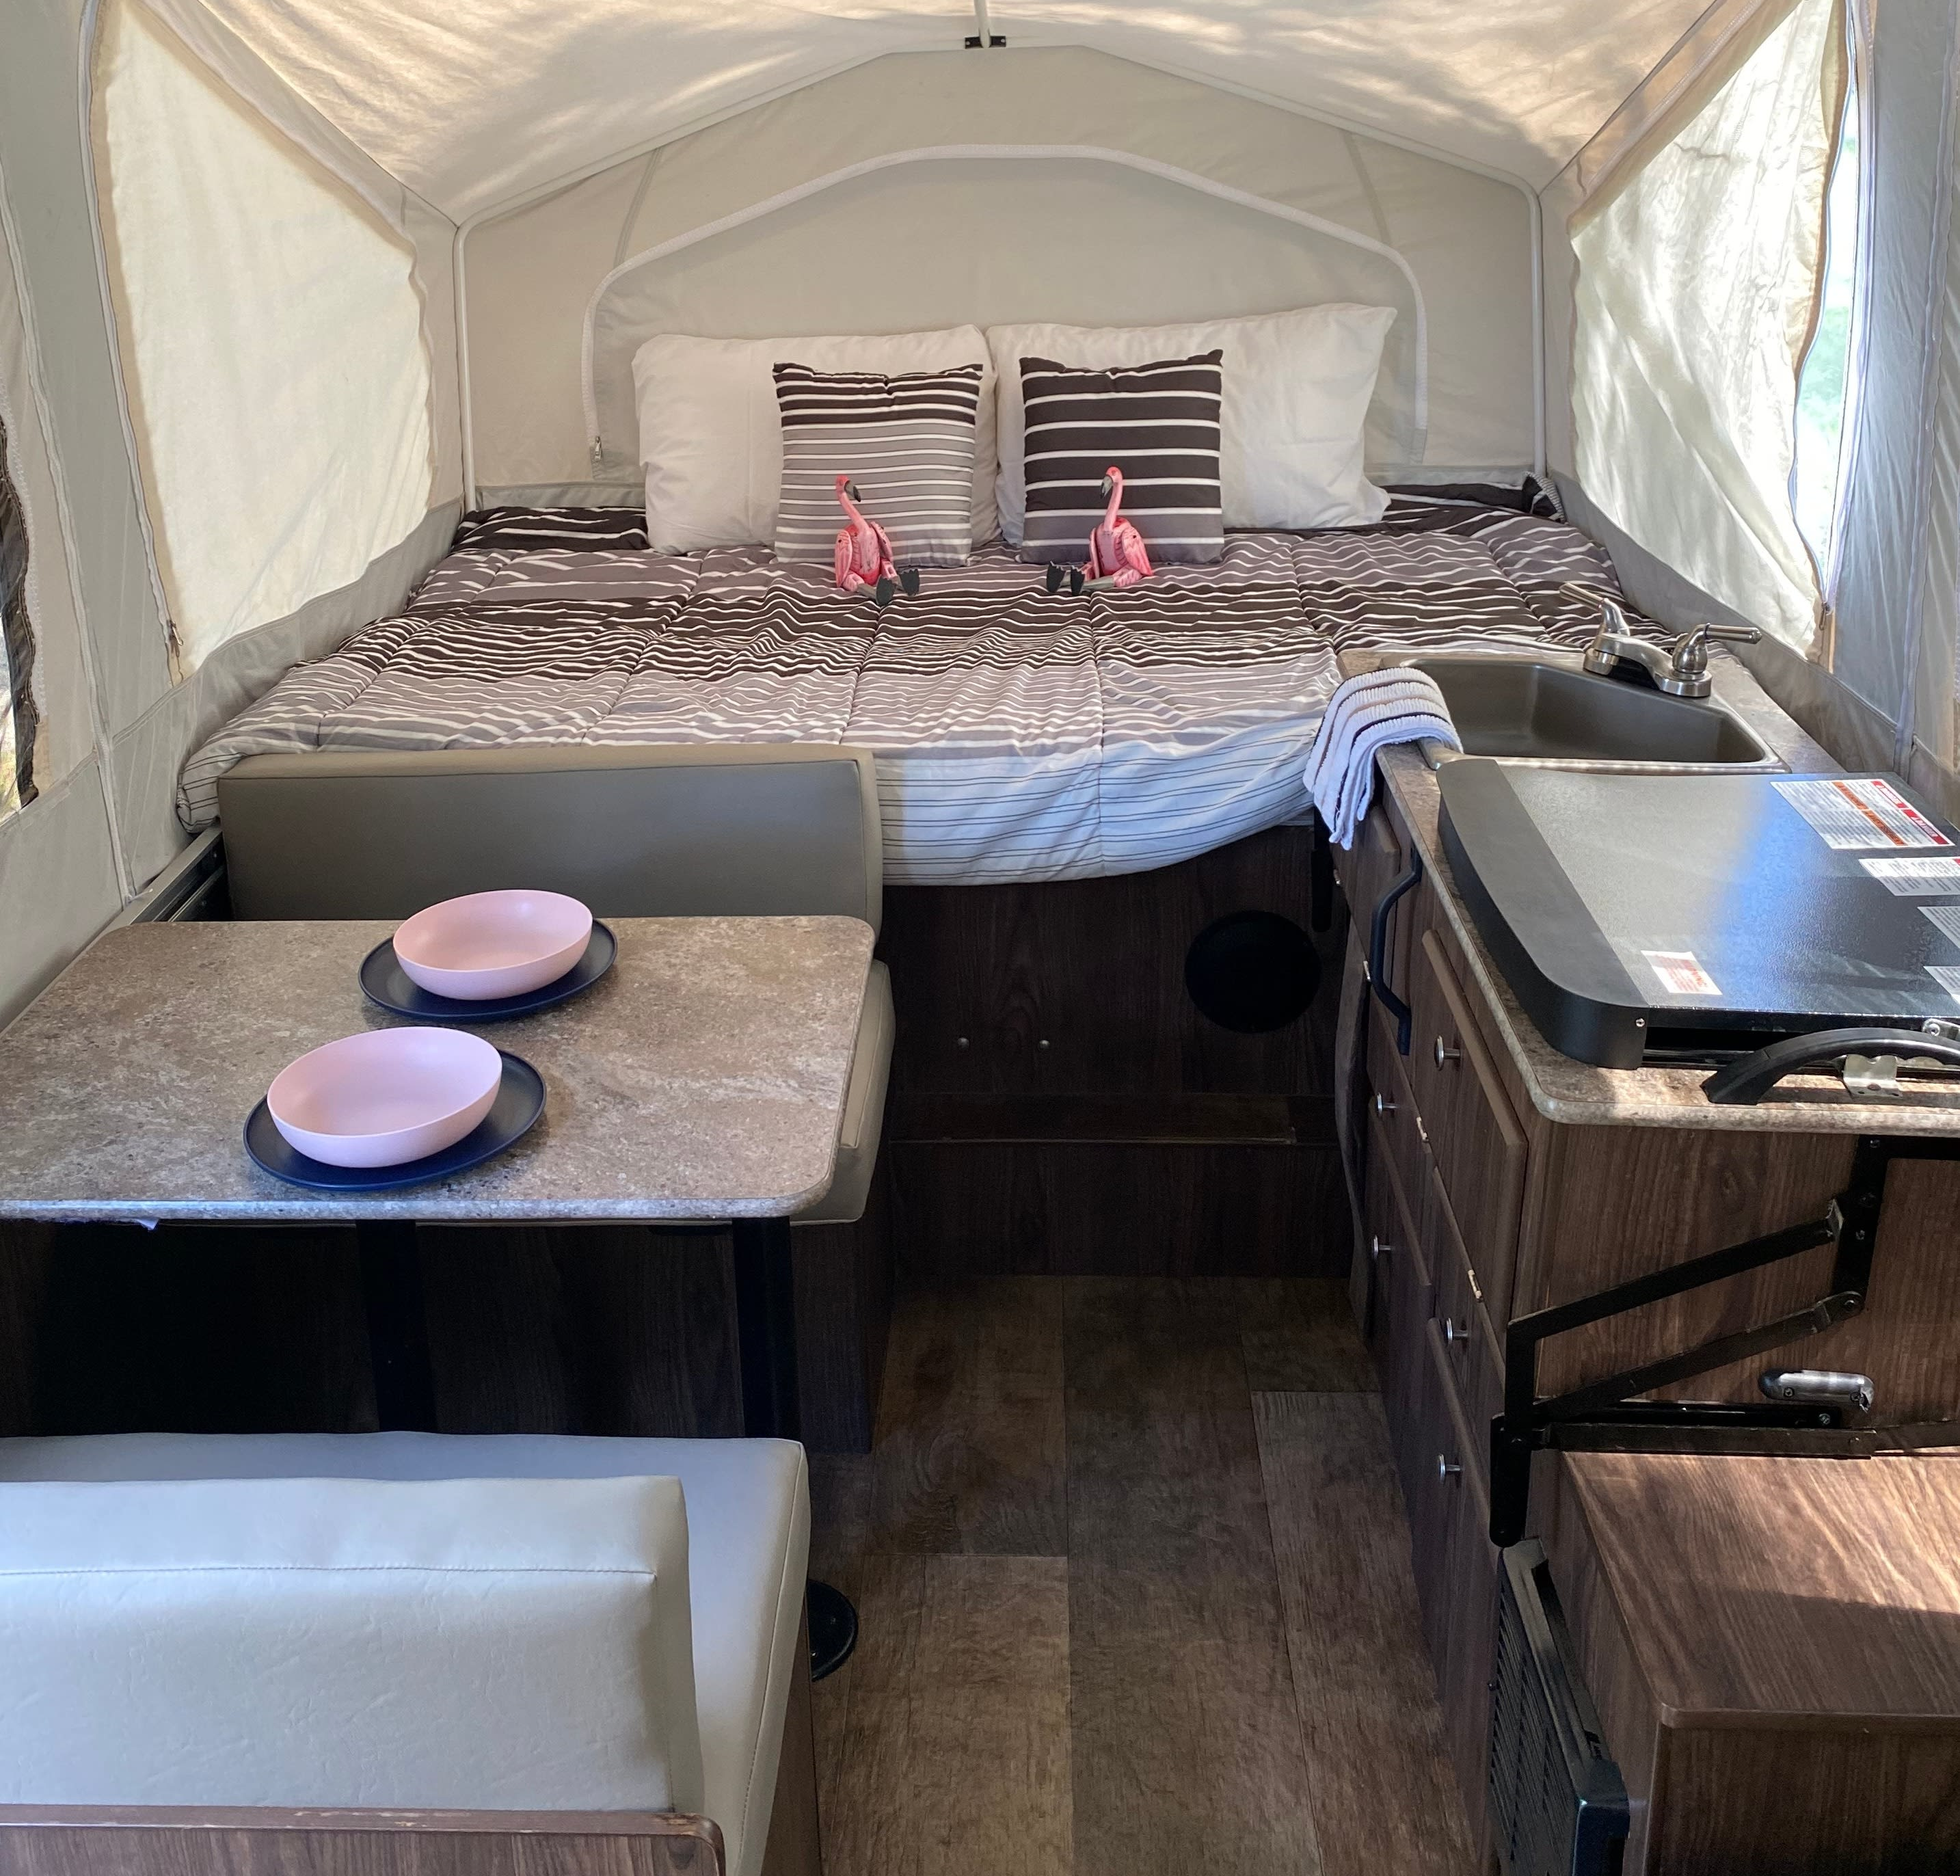 Full bed with kitchenette and dining table. ForestRiver Flagstaff 2017